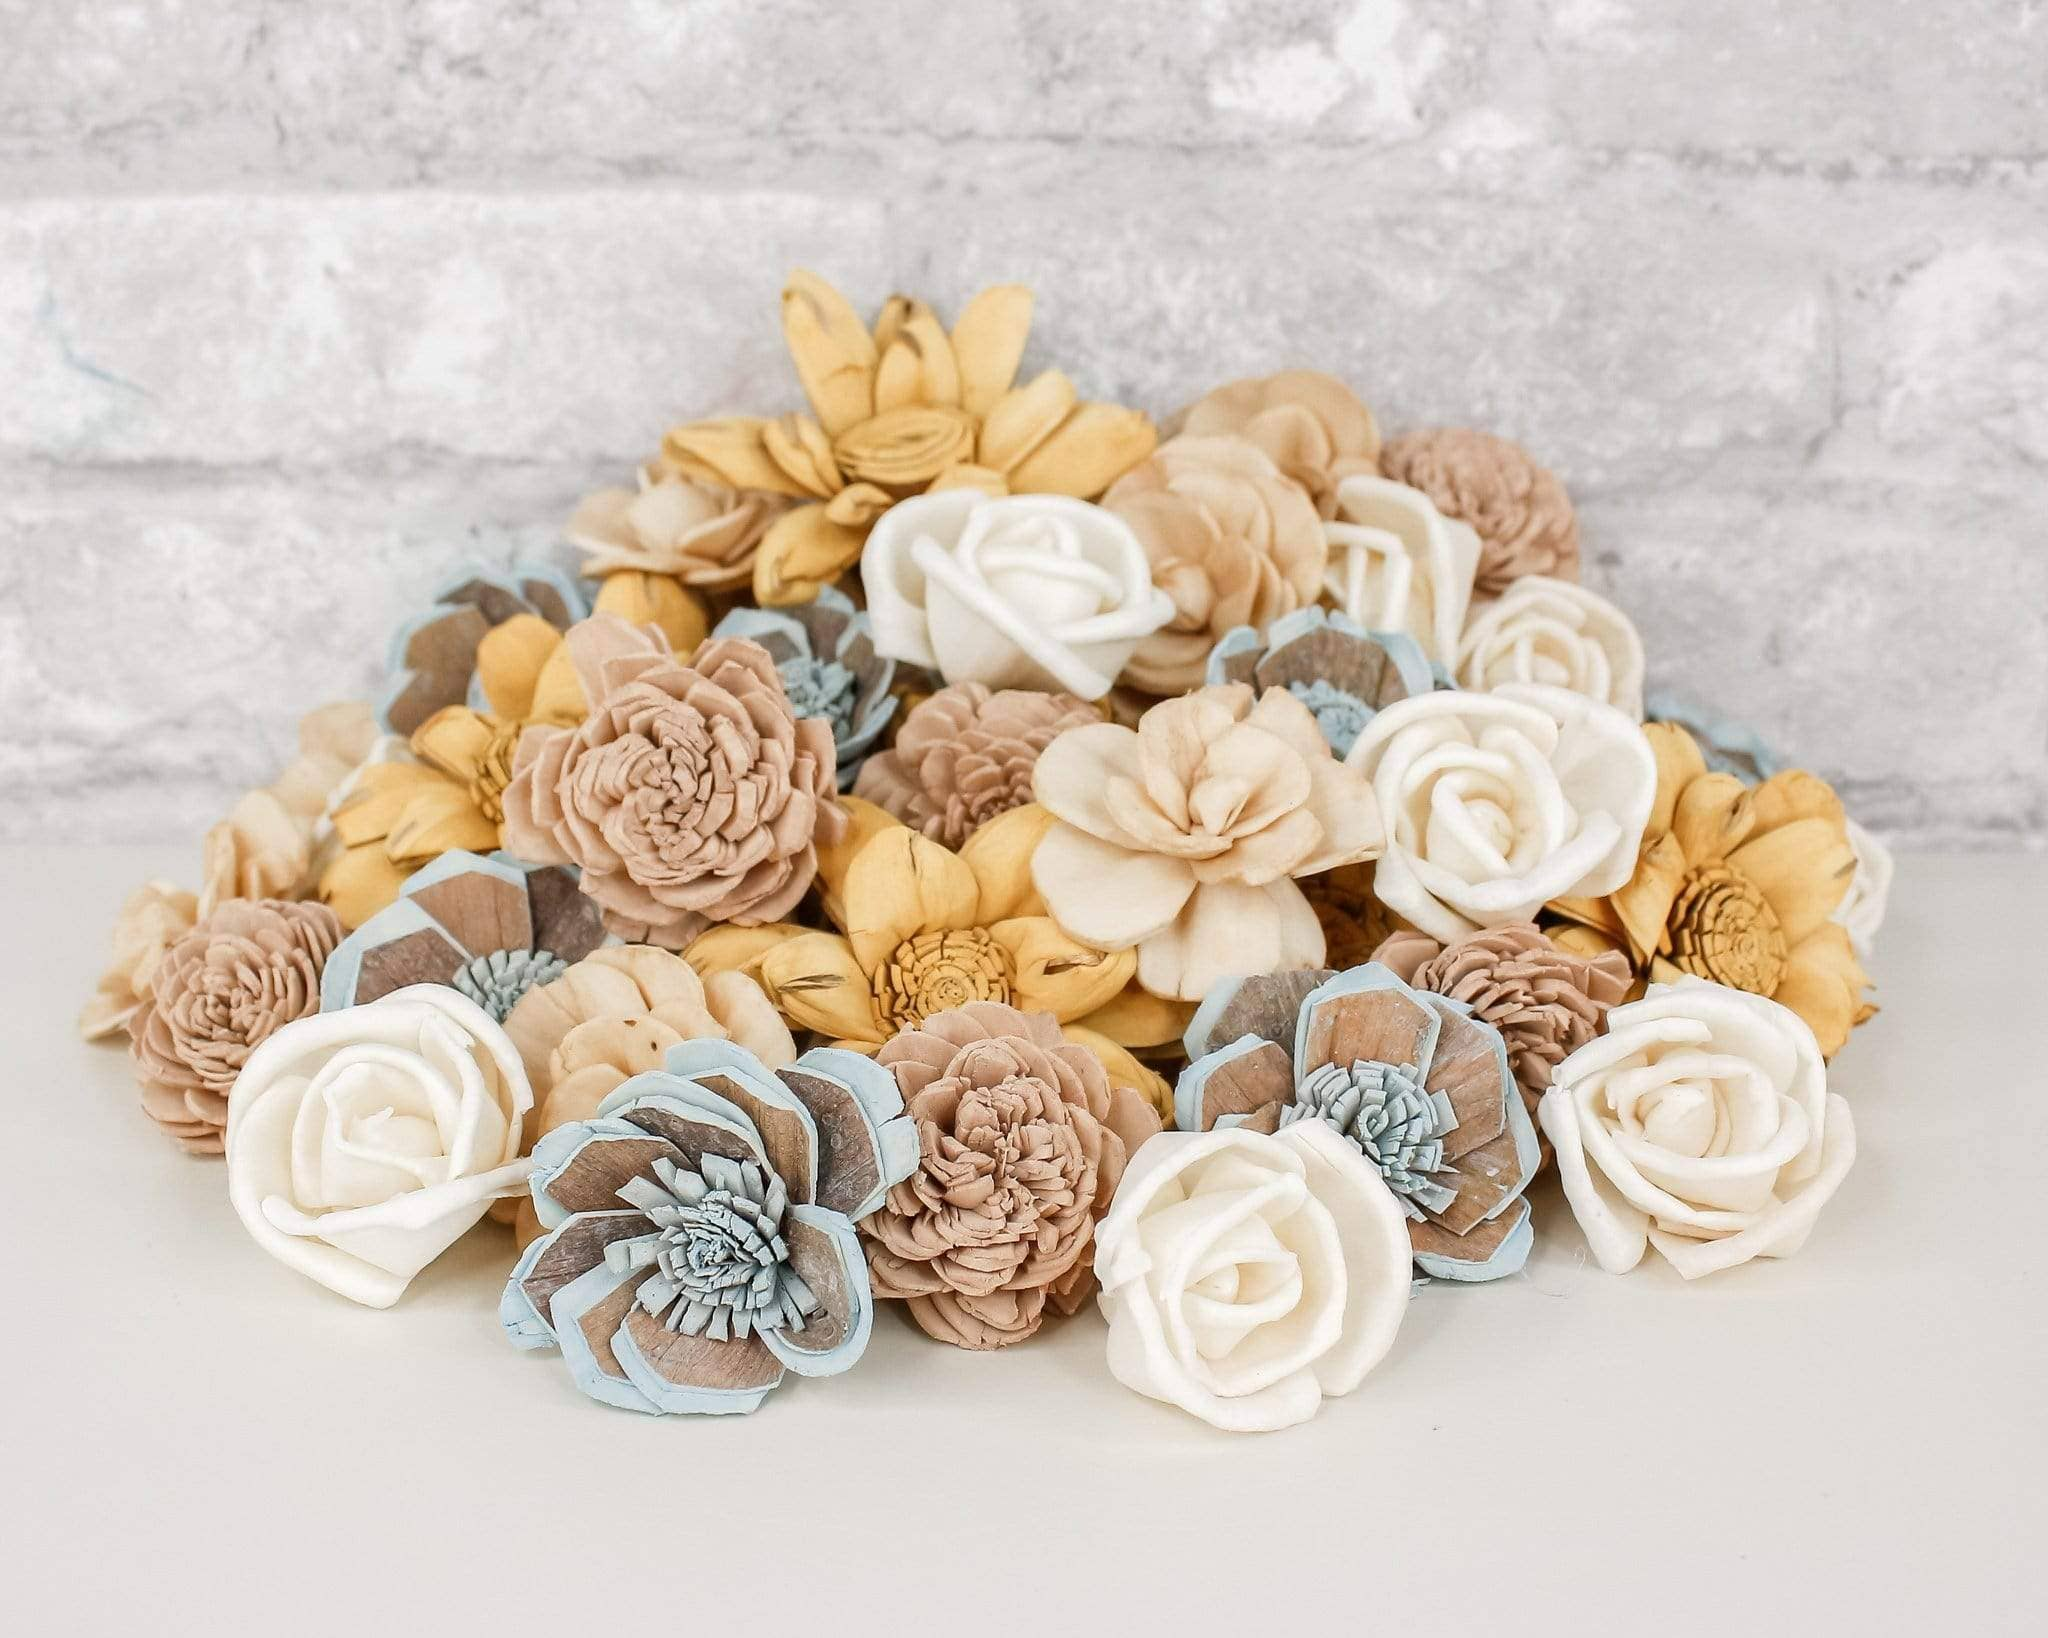 Sola Wood Flower Assortment RIP Dyed